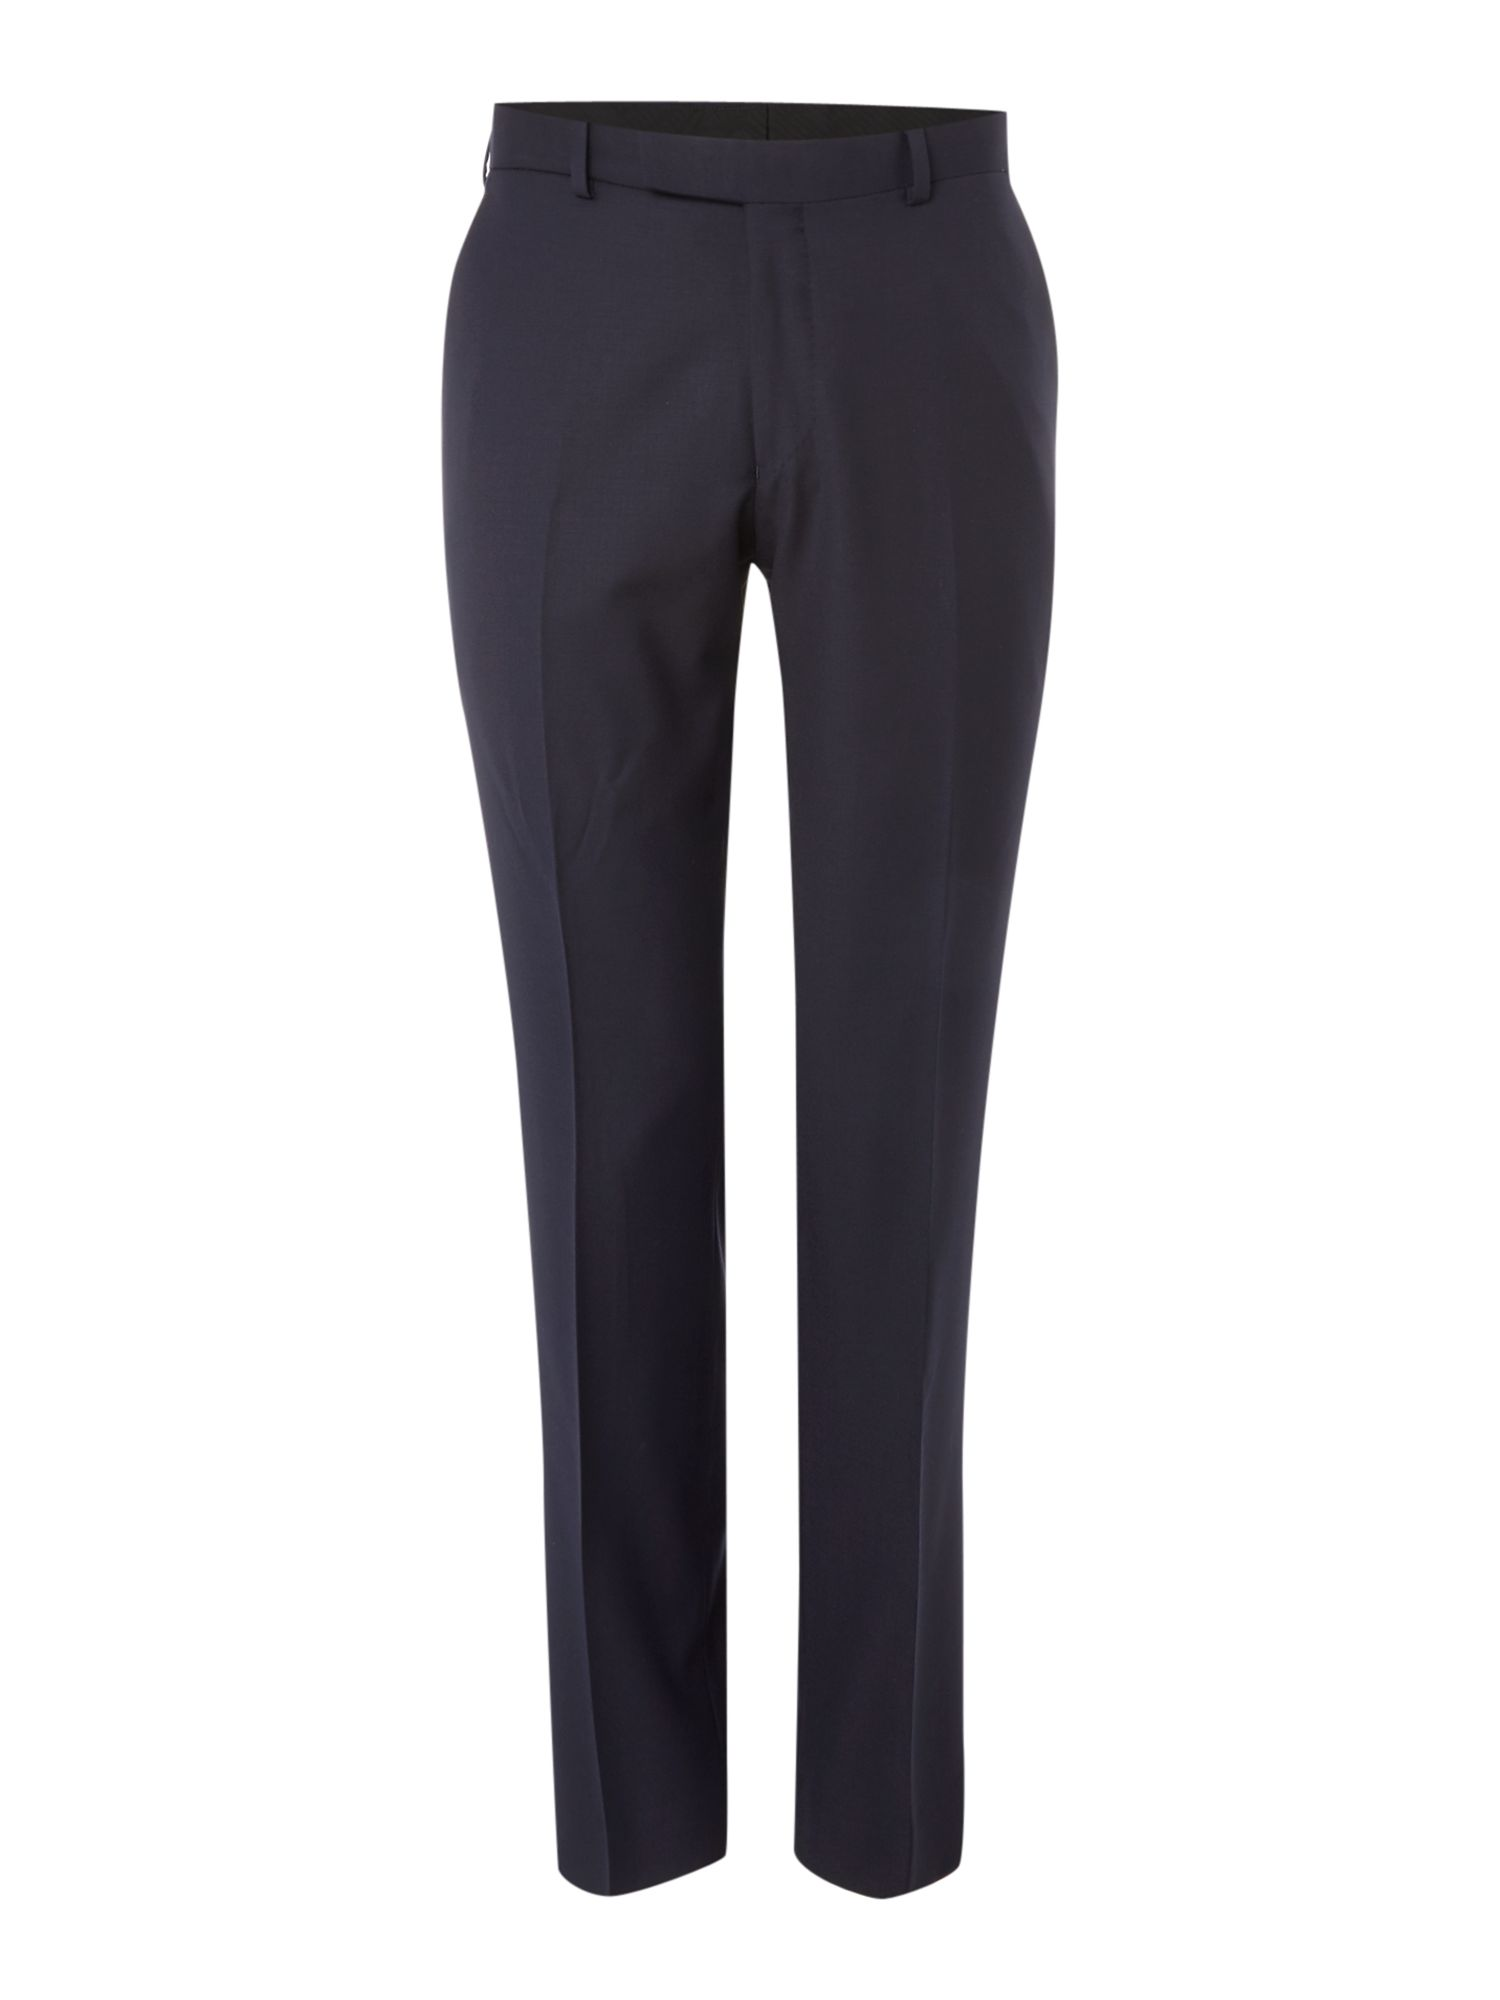 Men's Simon Carter Tailored Twill Flat Front Trouser, Navy